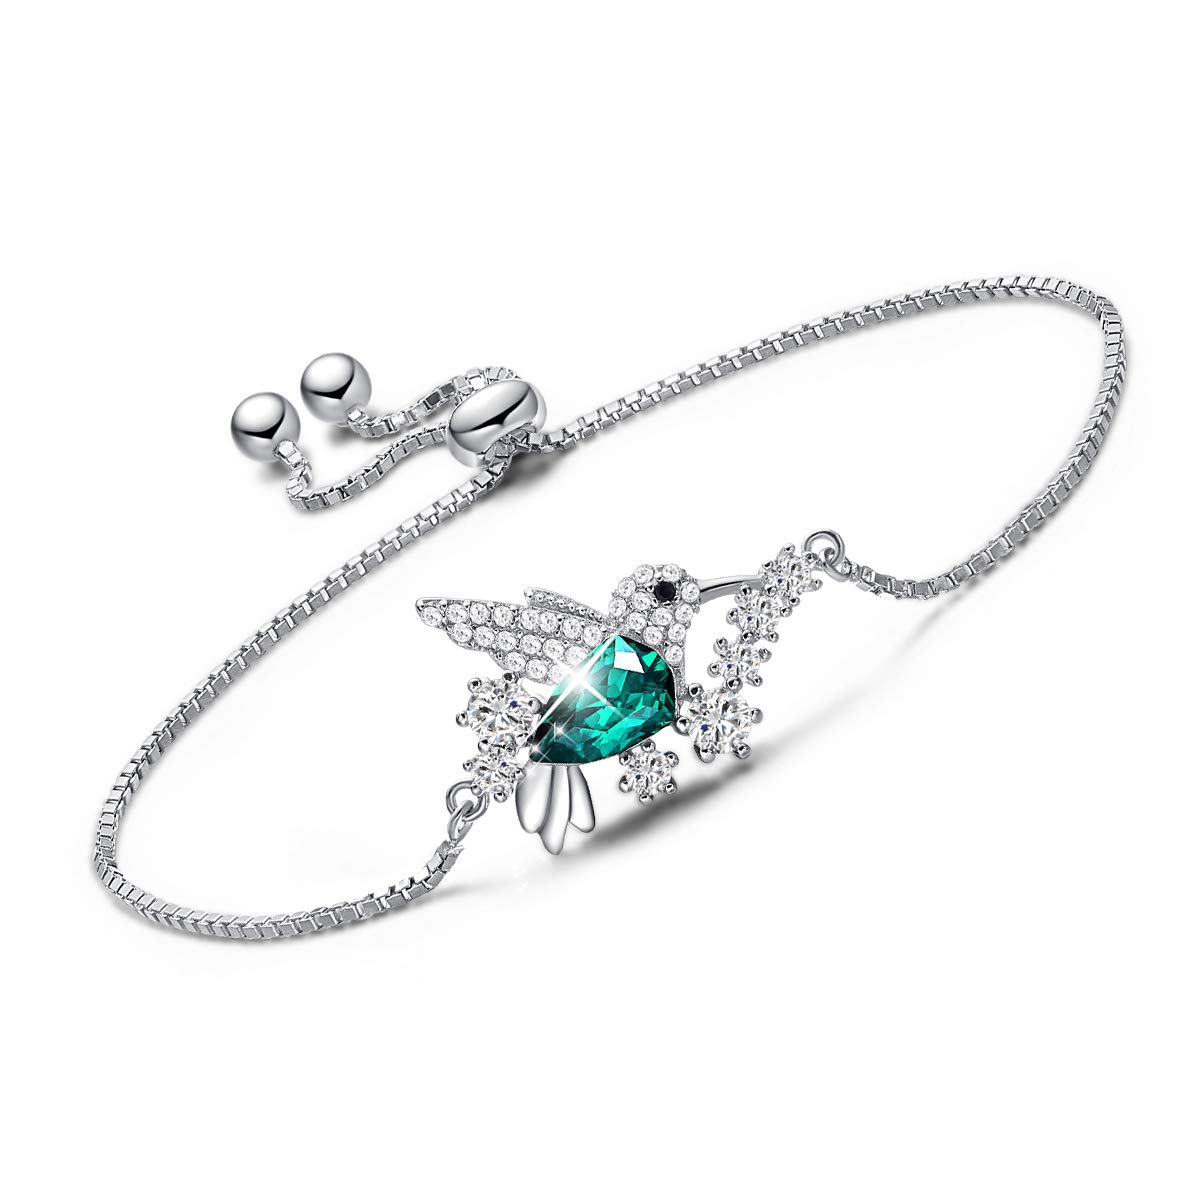 89cf87cc0fc63 CDE Hummingbird S925 Sterling Silver Bracelet, Fine Green Jewelry Bracelet  Bangle Embellished with Crystals from Swarovski Women Cuff